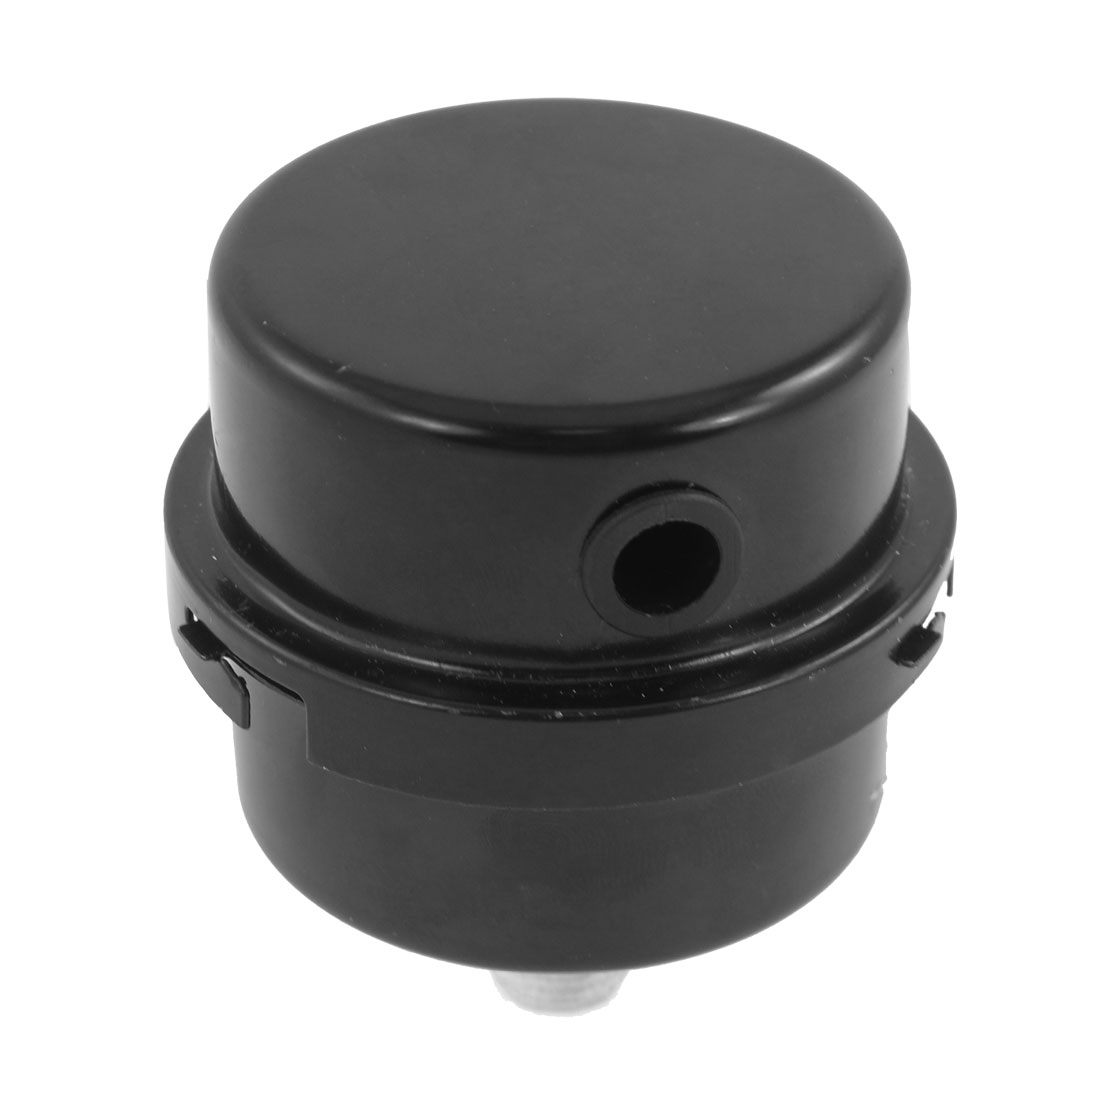 "Black Metal 0.5"" 12.6mm Male Thread Air Compressor Filter Silencer"